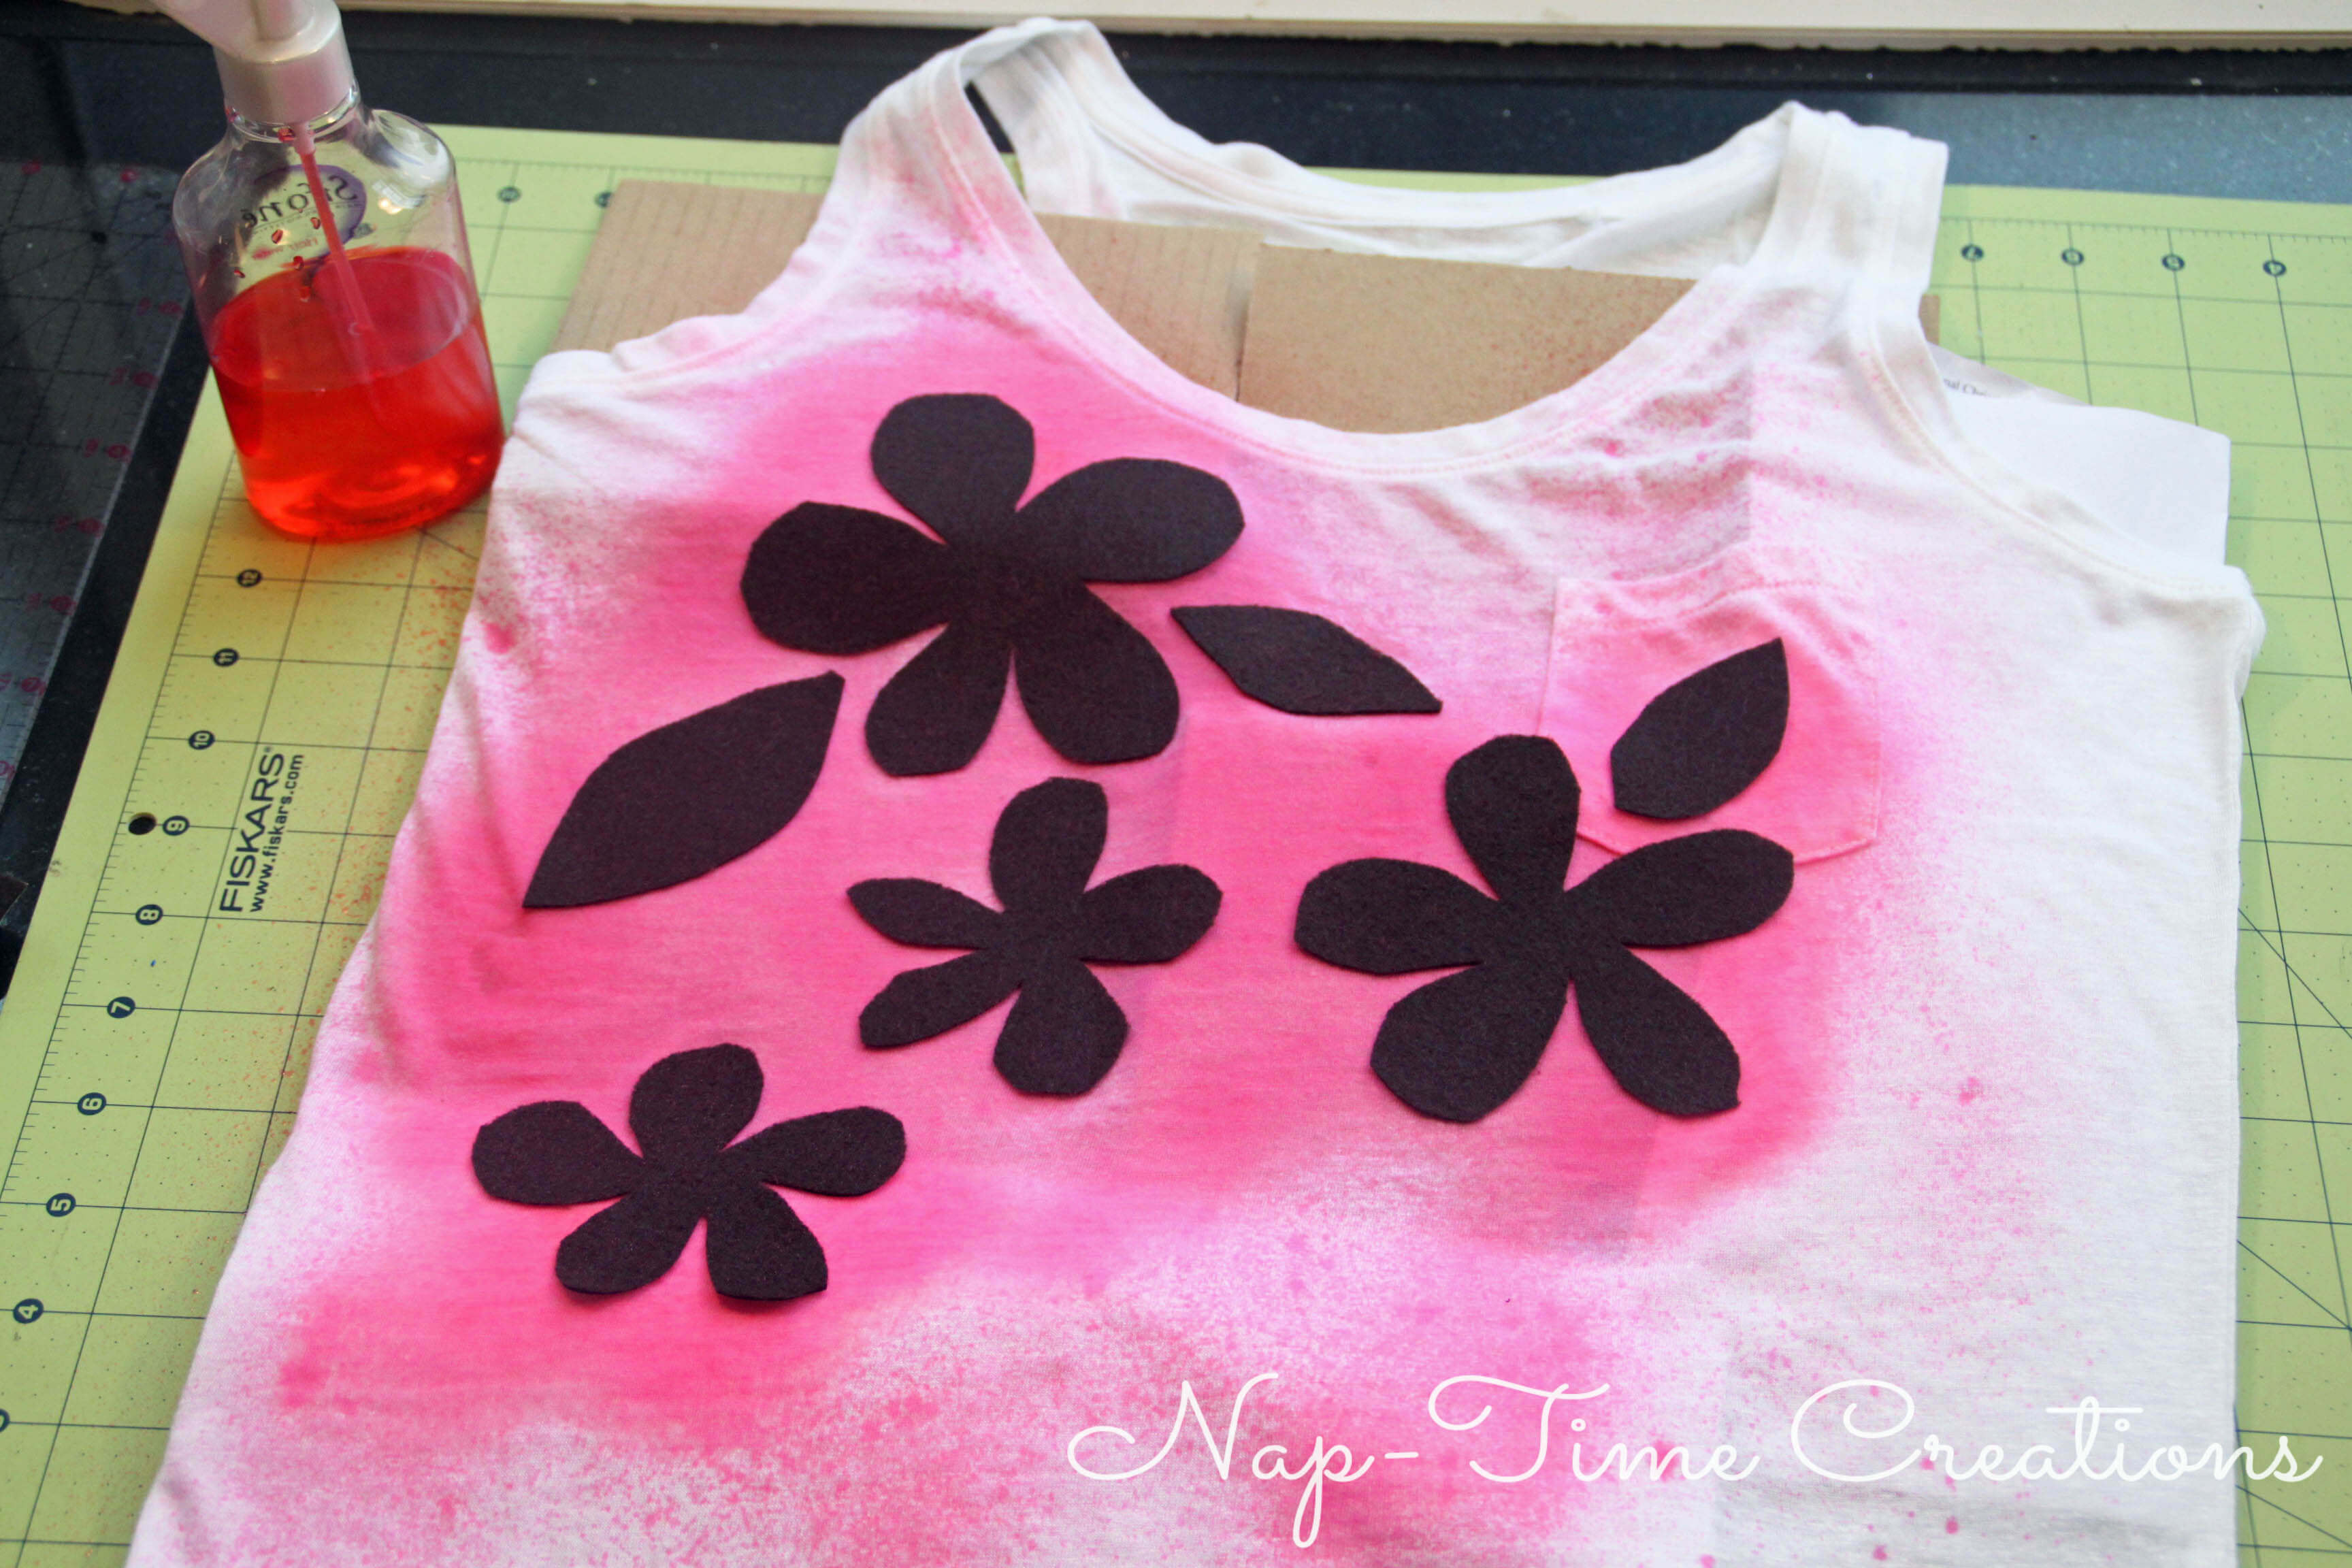 Spray Paint Designs For T Shirts Bcd Tofu House